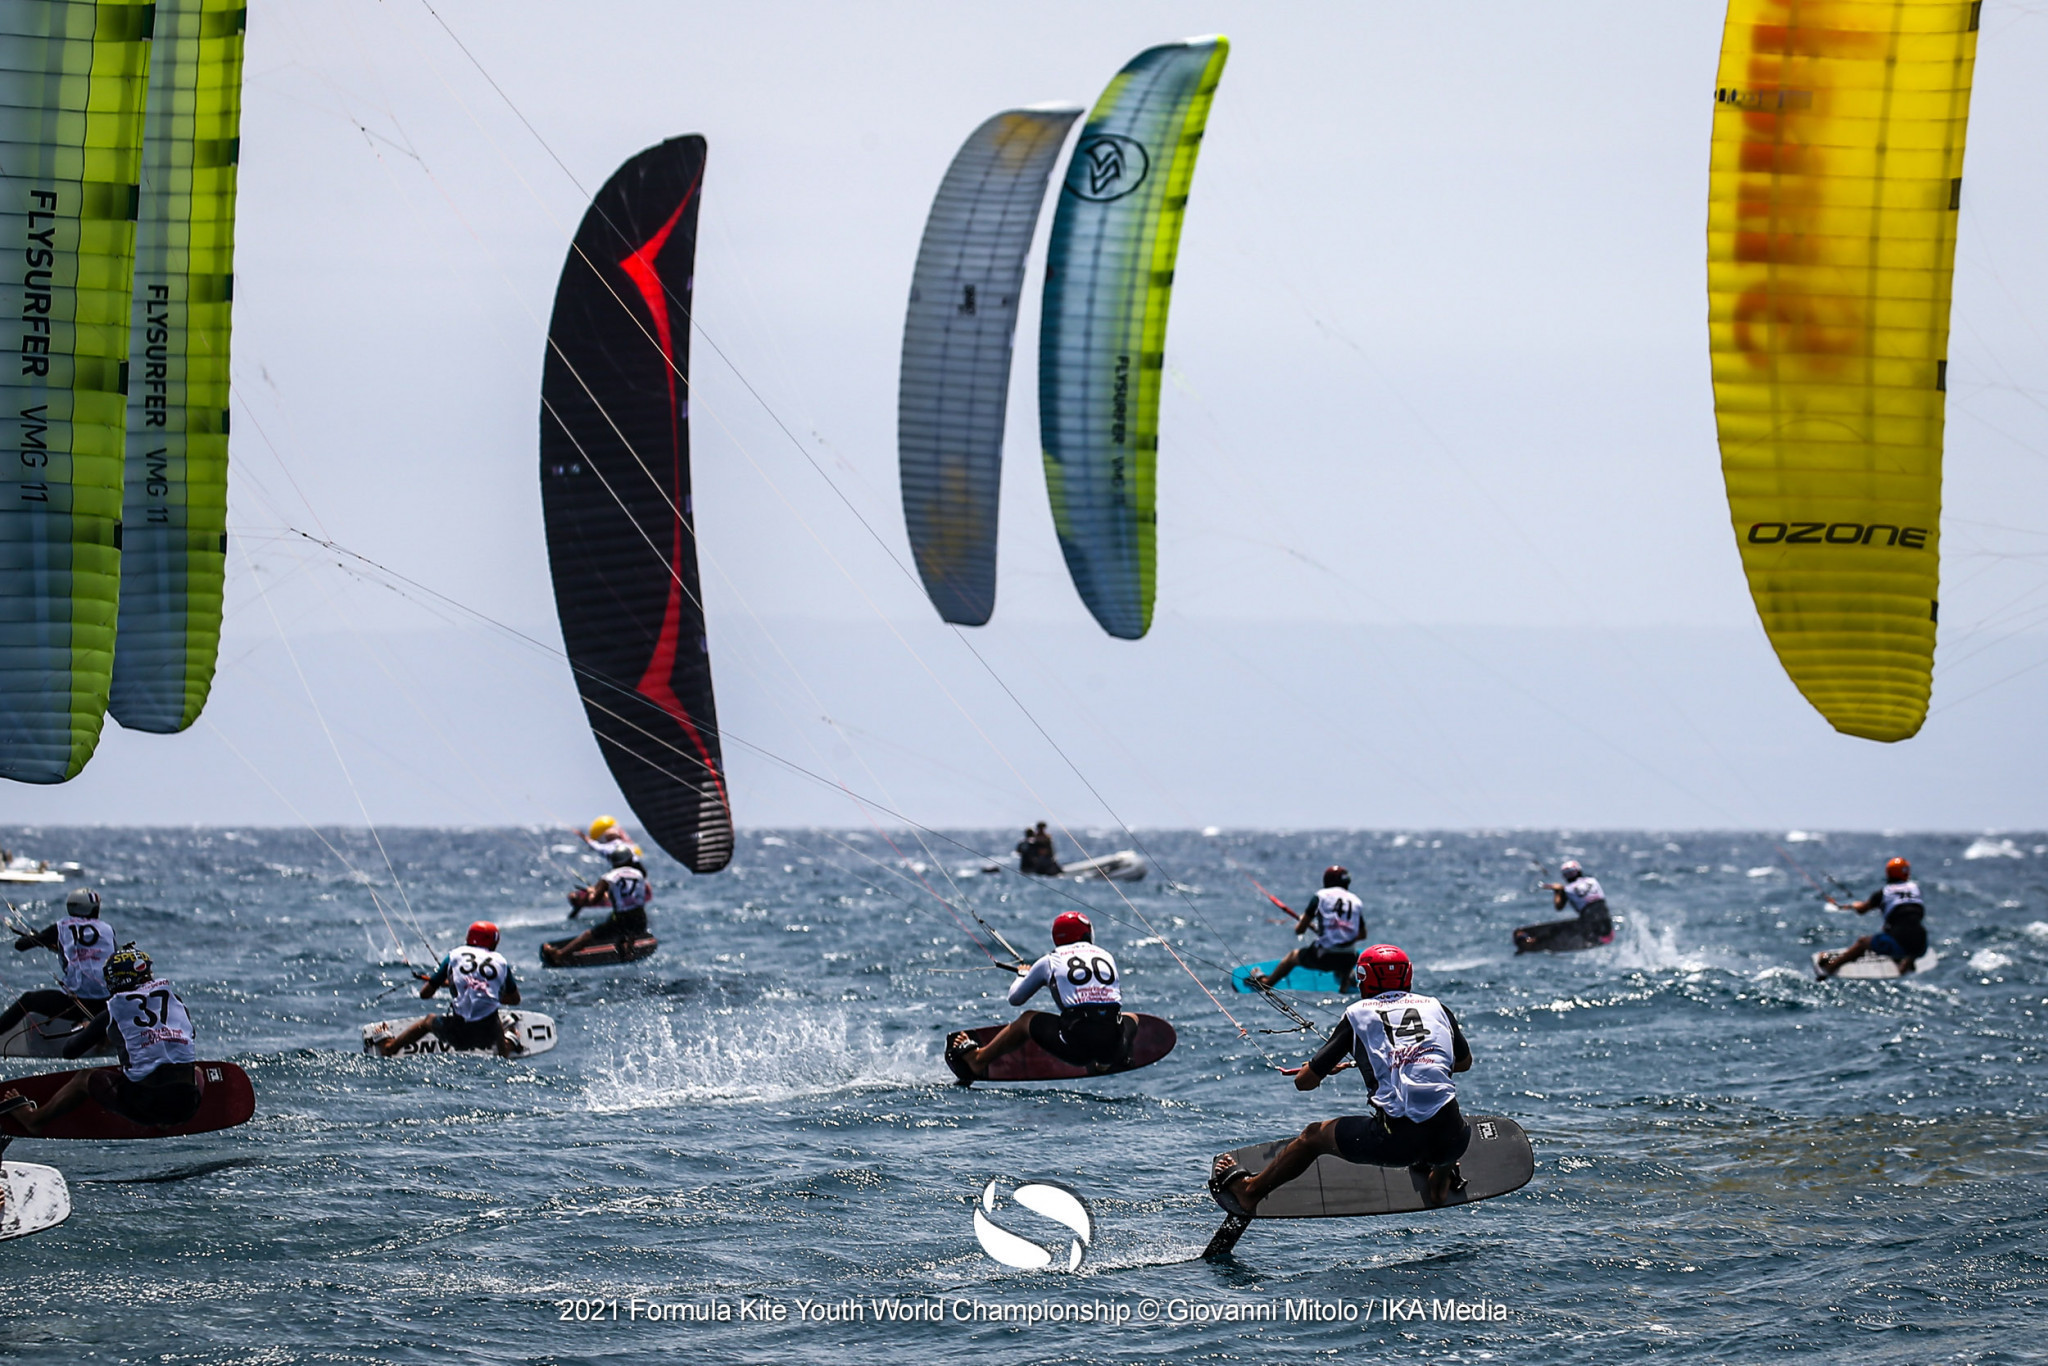 Julia Damasiewicz and Maximilian Maeder have maintained their dominant starts to the Formula Kite Under-19 World Championships at Gizzeria in southern Italy ©IKA Media/Giovanni Mitolo